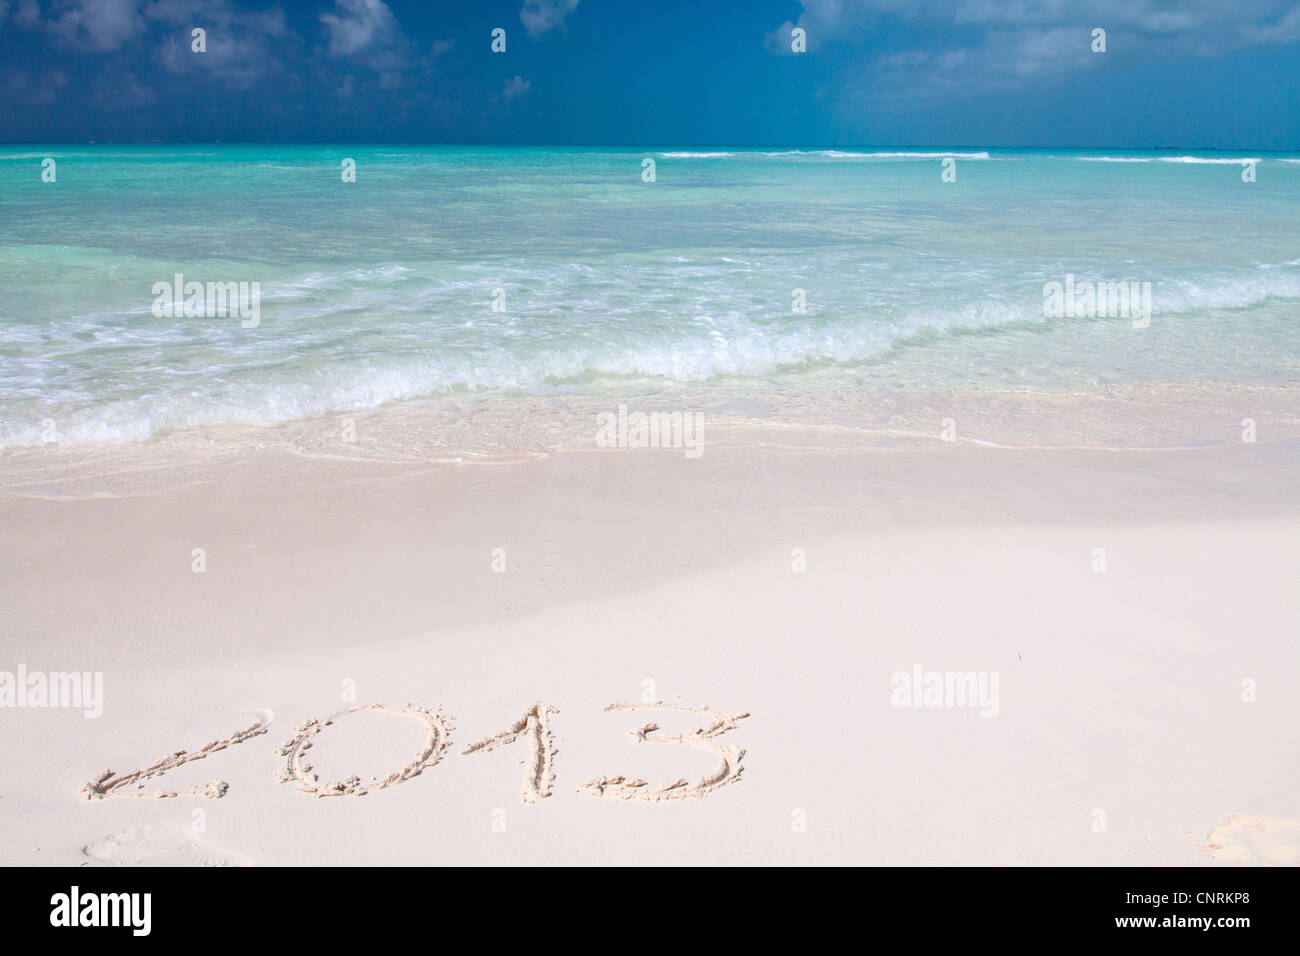 Year 2013 hand written on the white sand in front of the sea - Stock Image